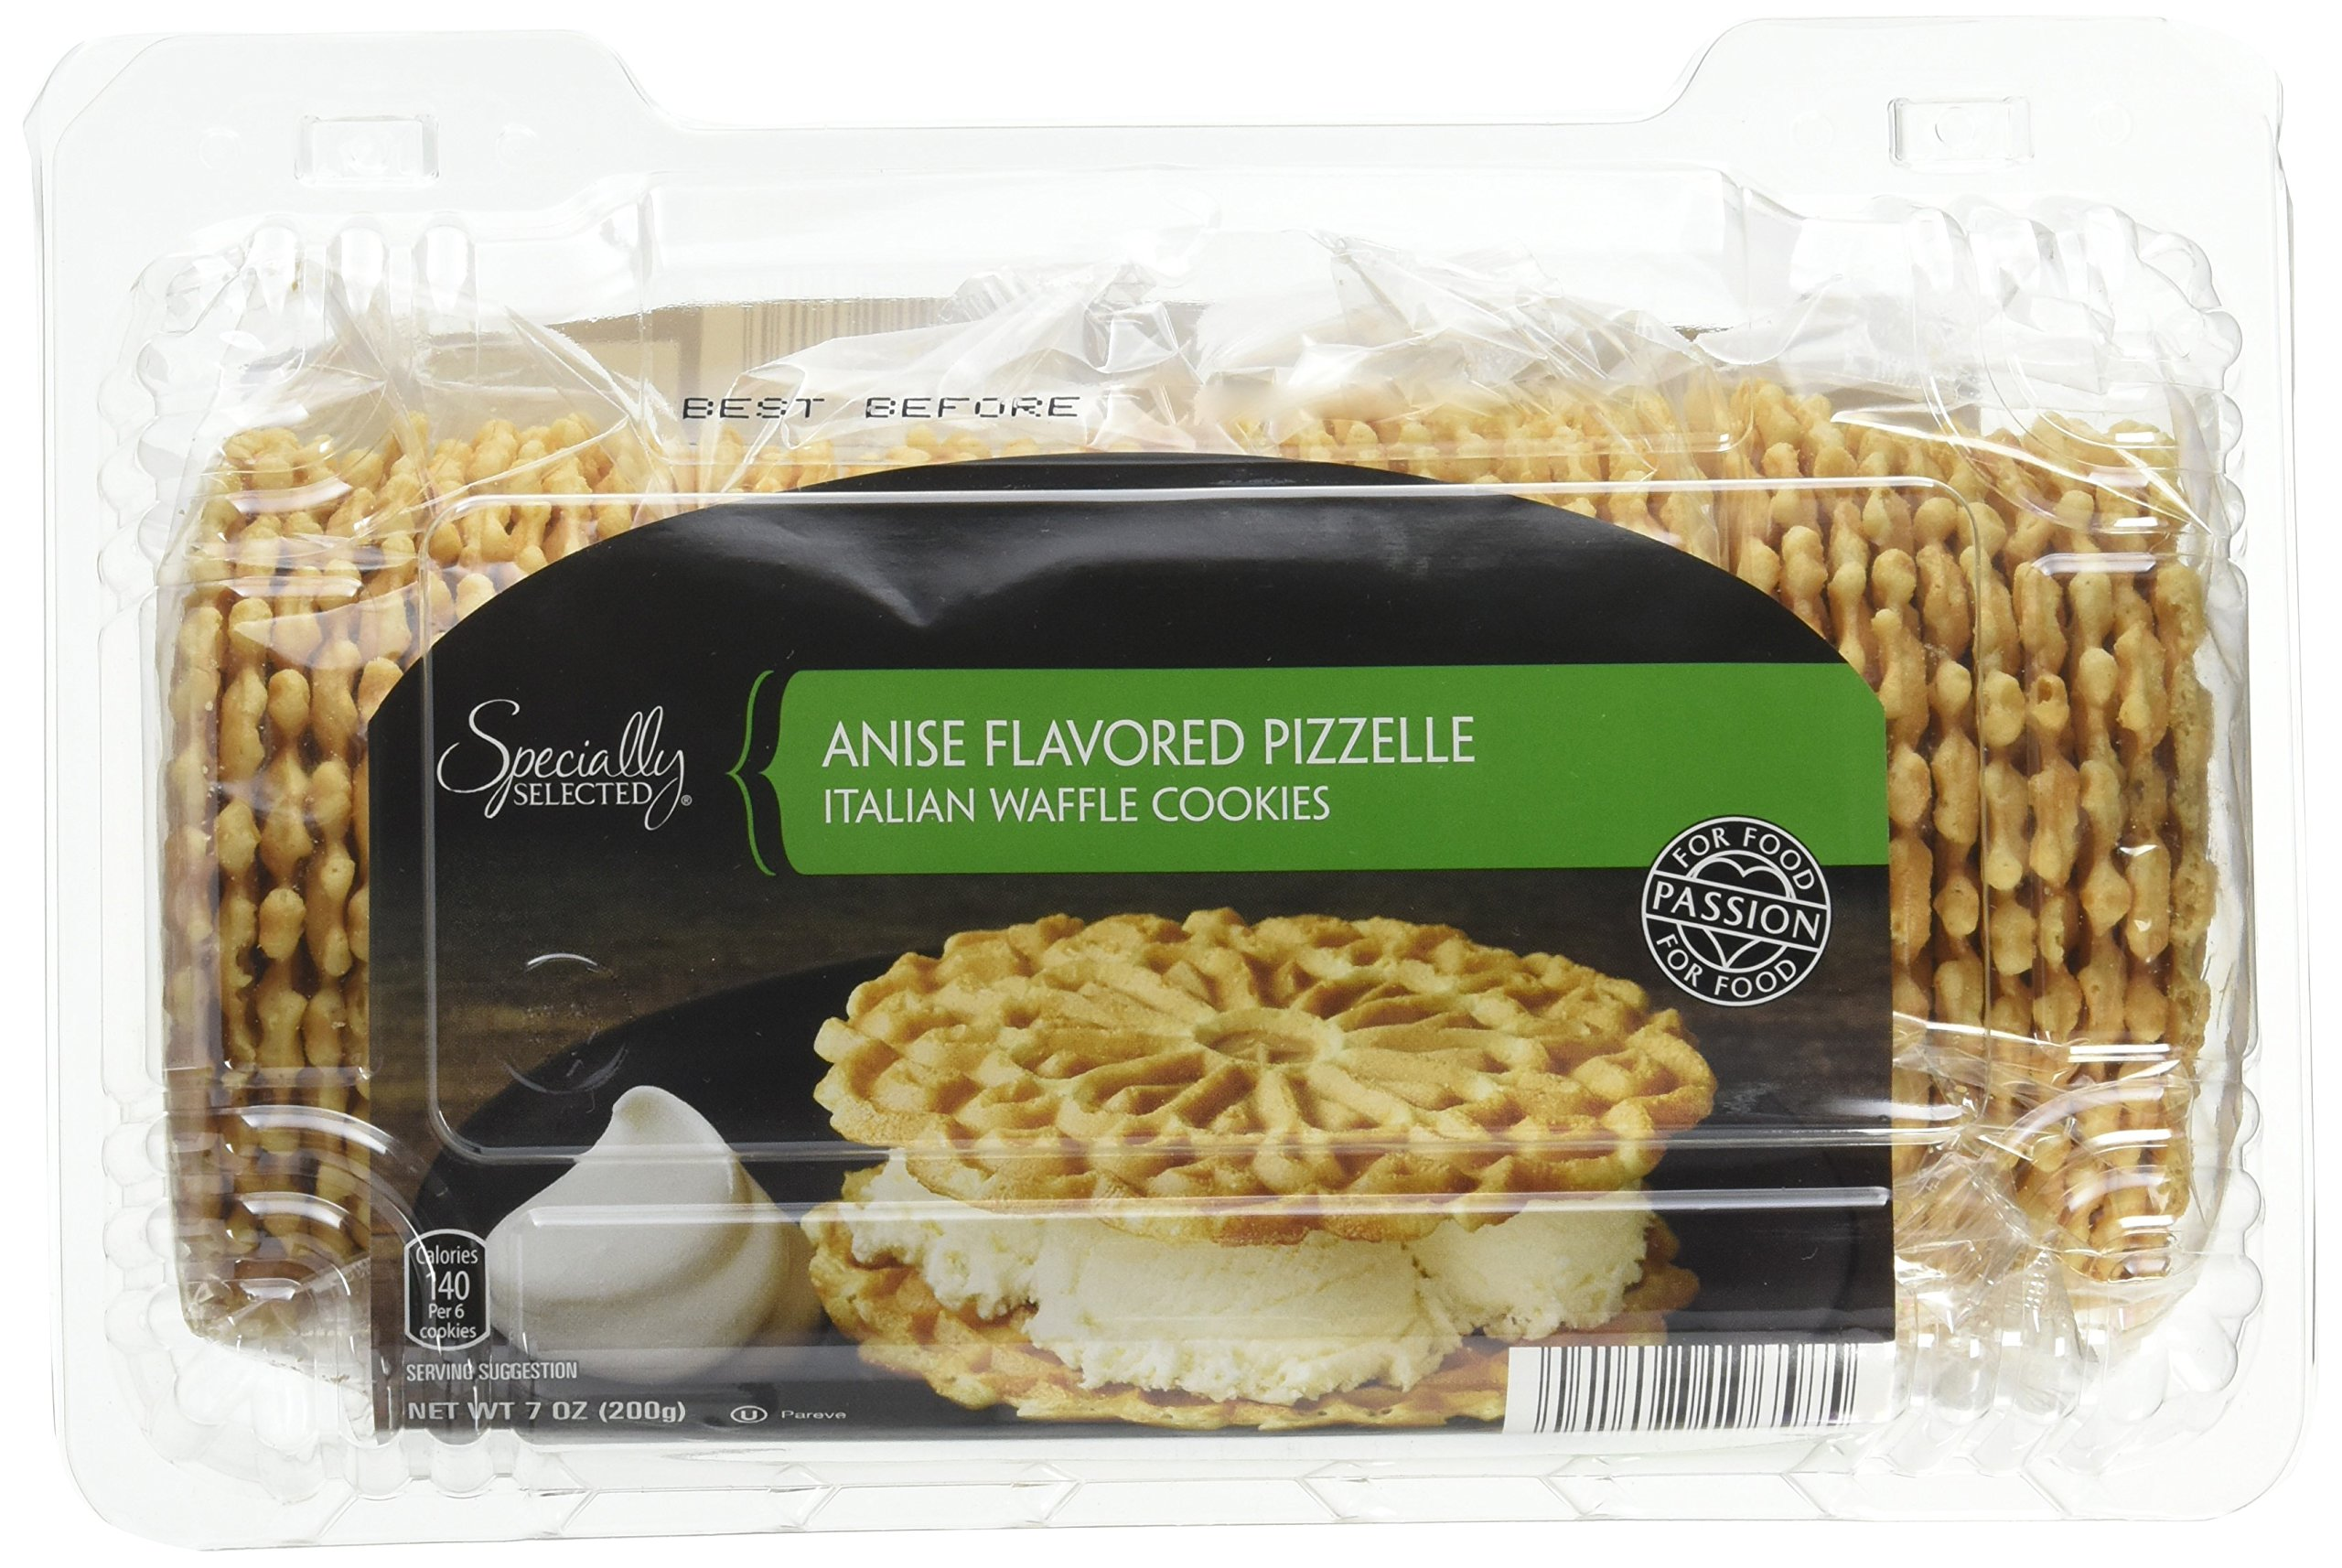 Pizzelle Italian Waffle Cookies Anise Flavor - 7 Oz Package Contains 4 Wrapped Packs of 9-11 Pizelles by Specially Selected